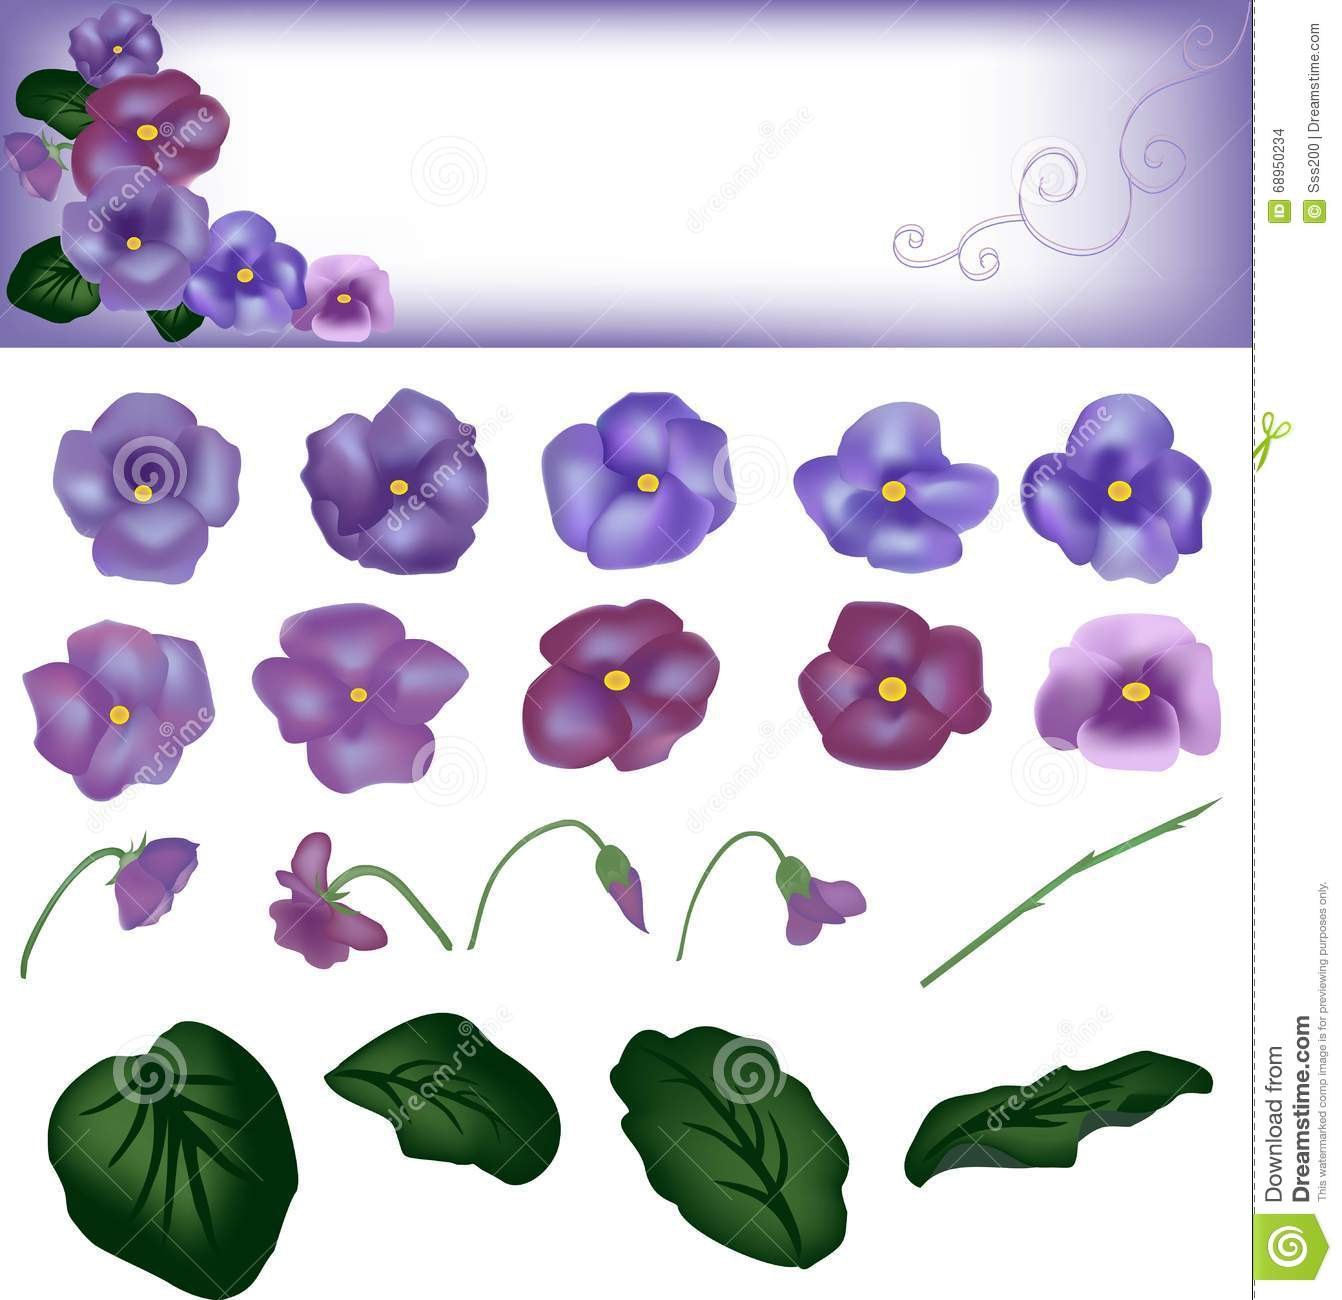 Violet Flowers With Round Leaves, A Card With Design From Flowers.